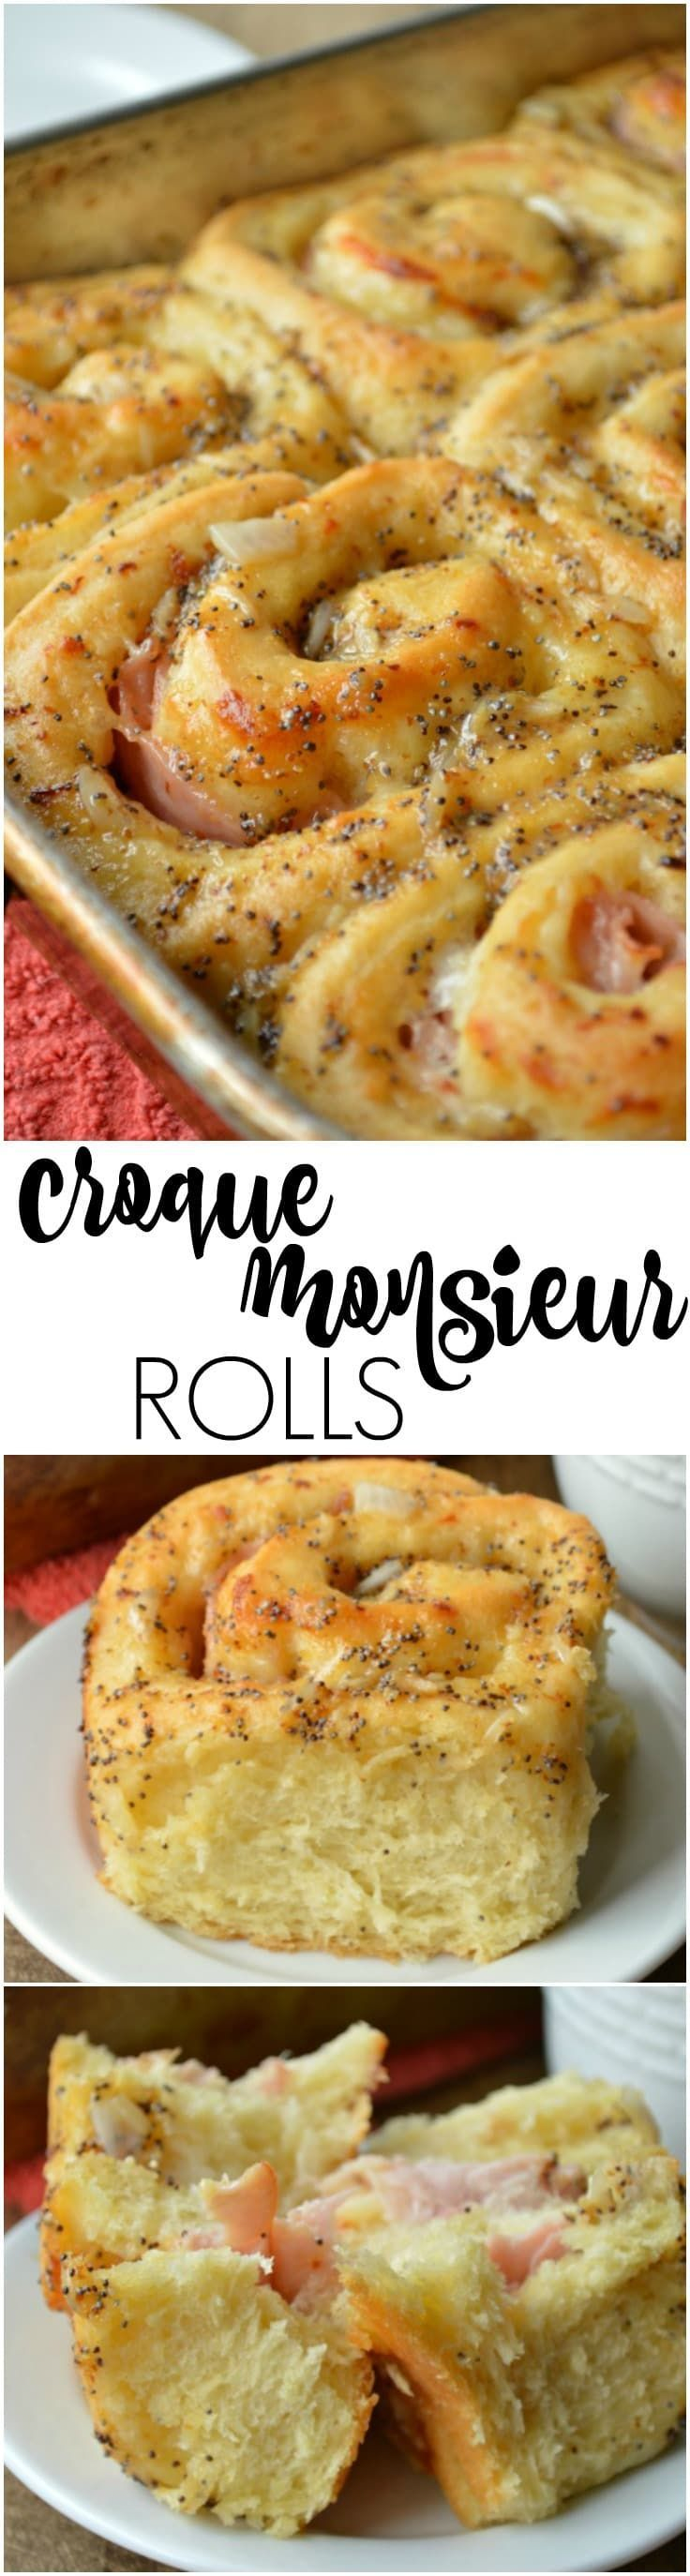 Croque Monsieur Rolls are everything you love about the famous grilled ham and cheese sandwich stuffed into a savory roll. It's perfect for brunch